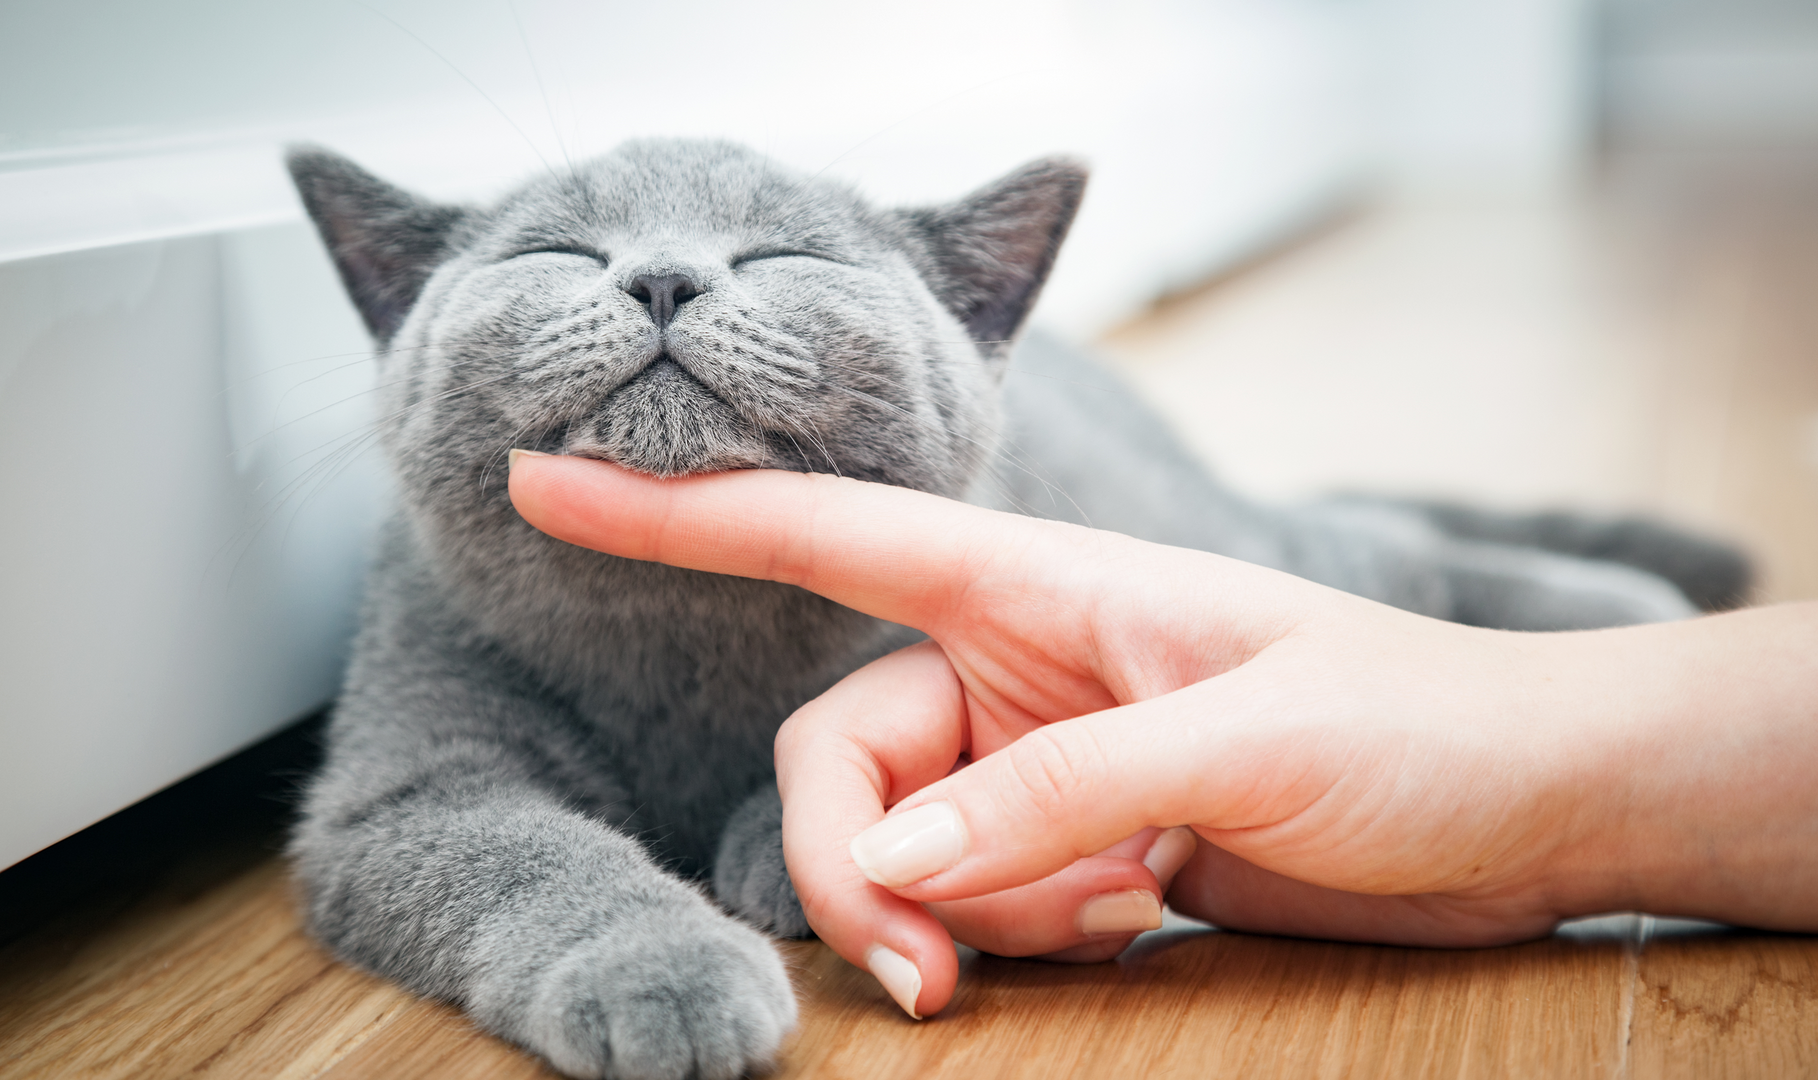 A person petting the underside of a cat's chin